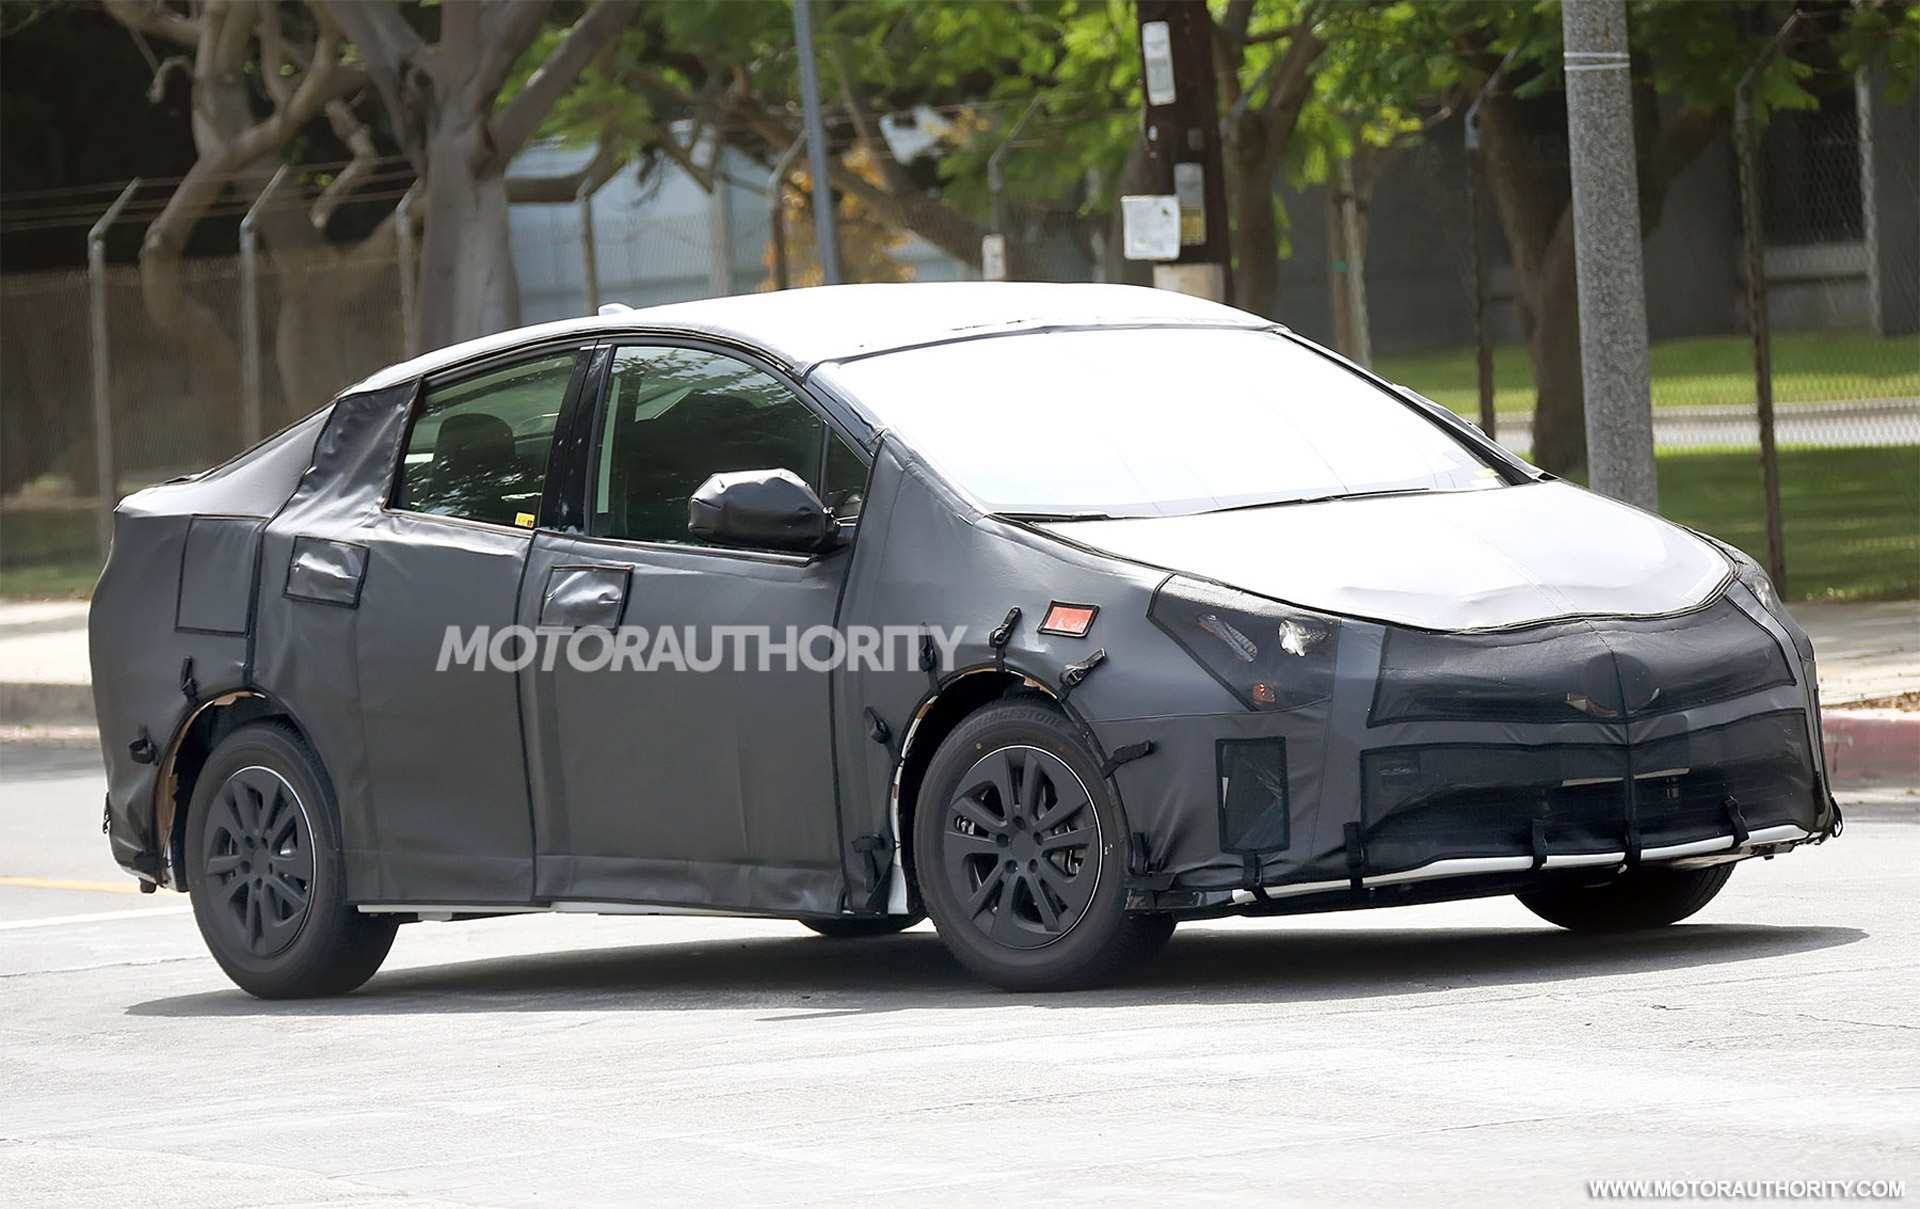 22 New 2020 Spy Shots Toyota Prius Pictures